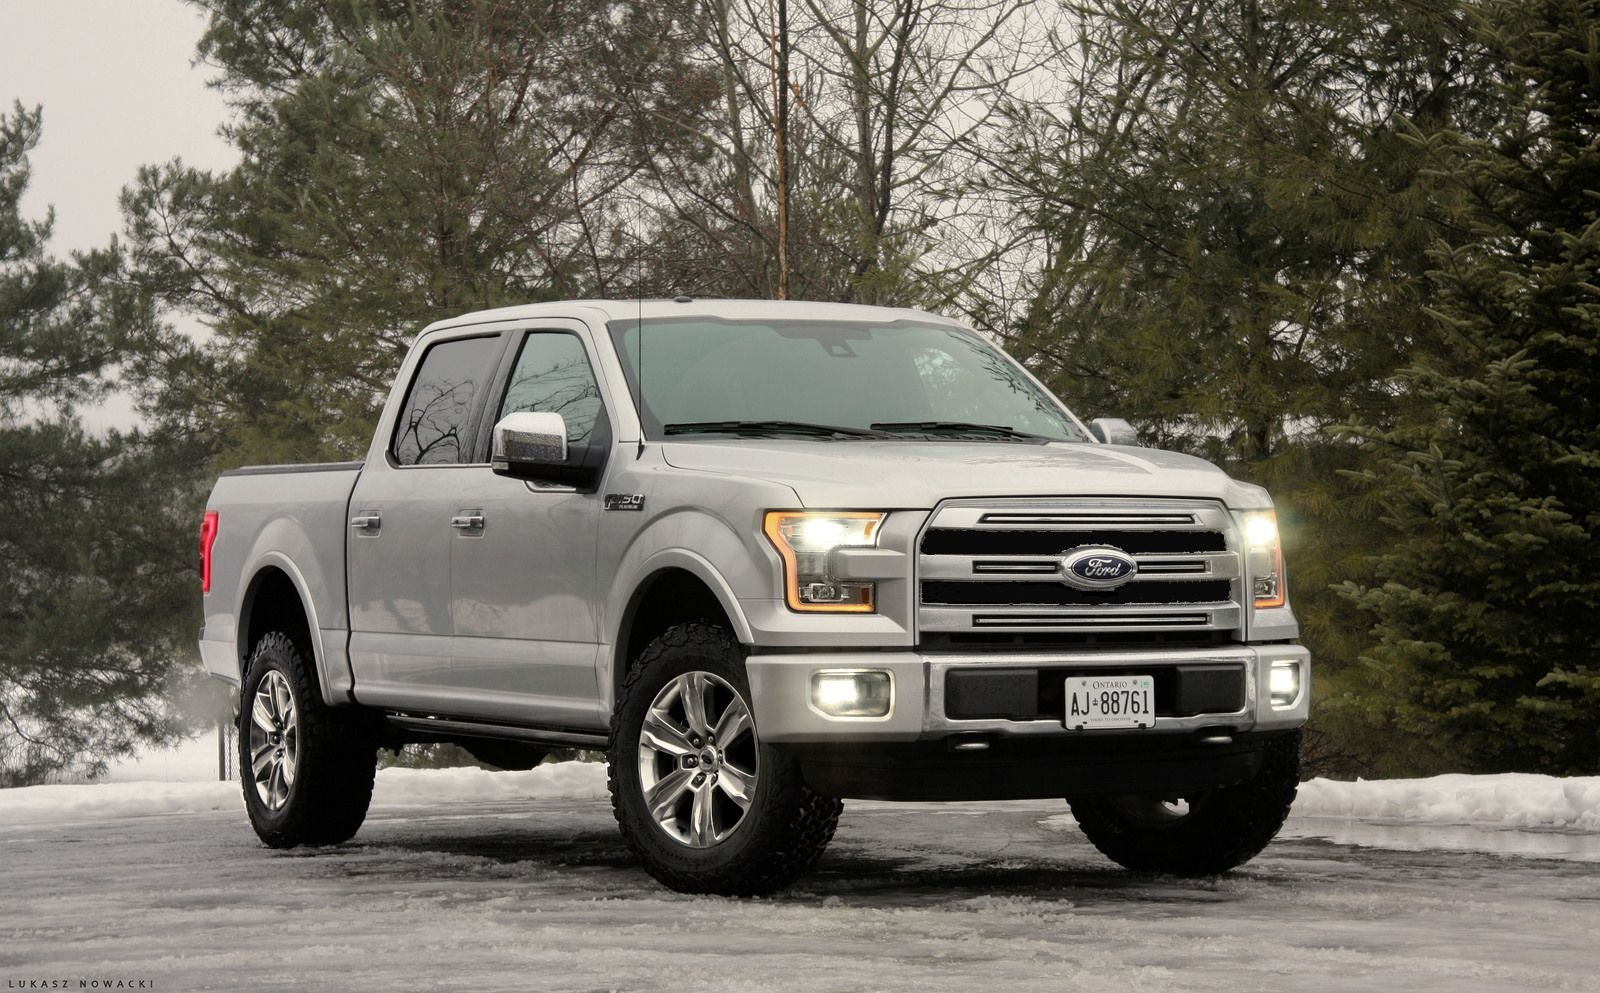 I like every thing about the lariat sport pkg except the blk gray grill and lower bumper i plan on buying a platinum grill and bumper and change it out on